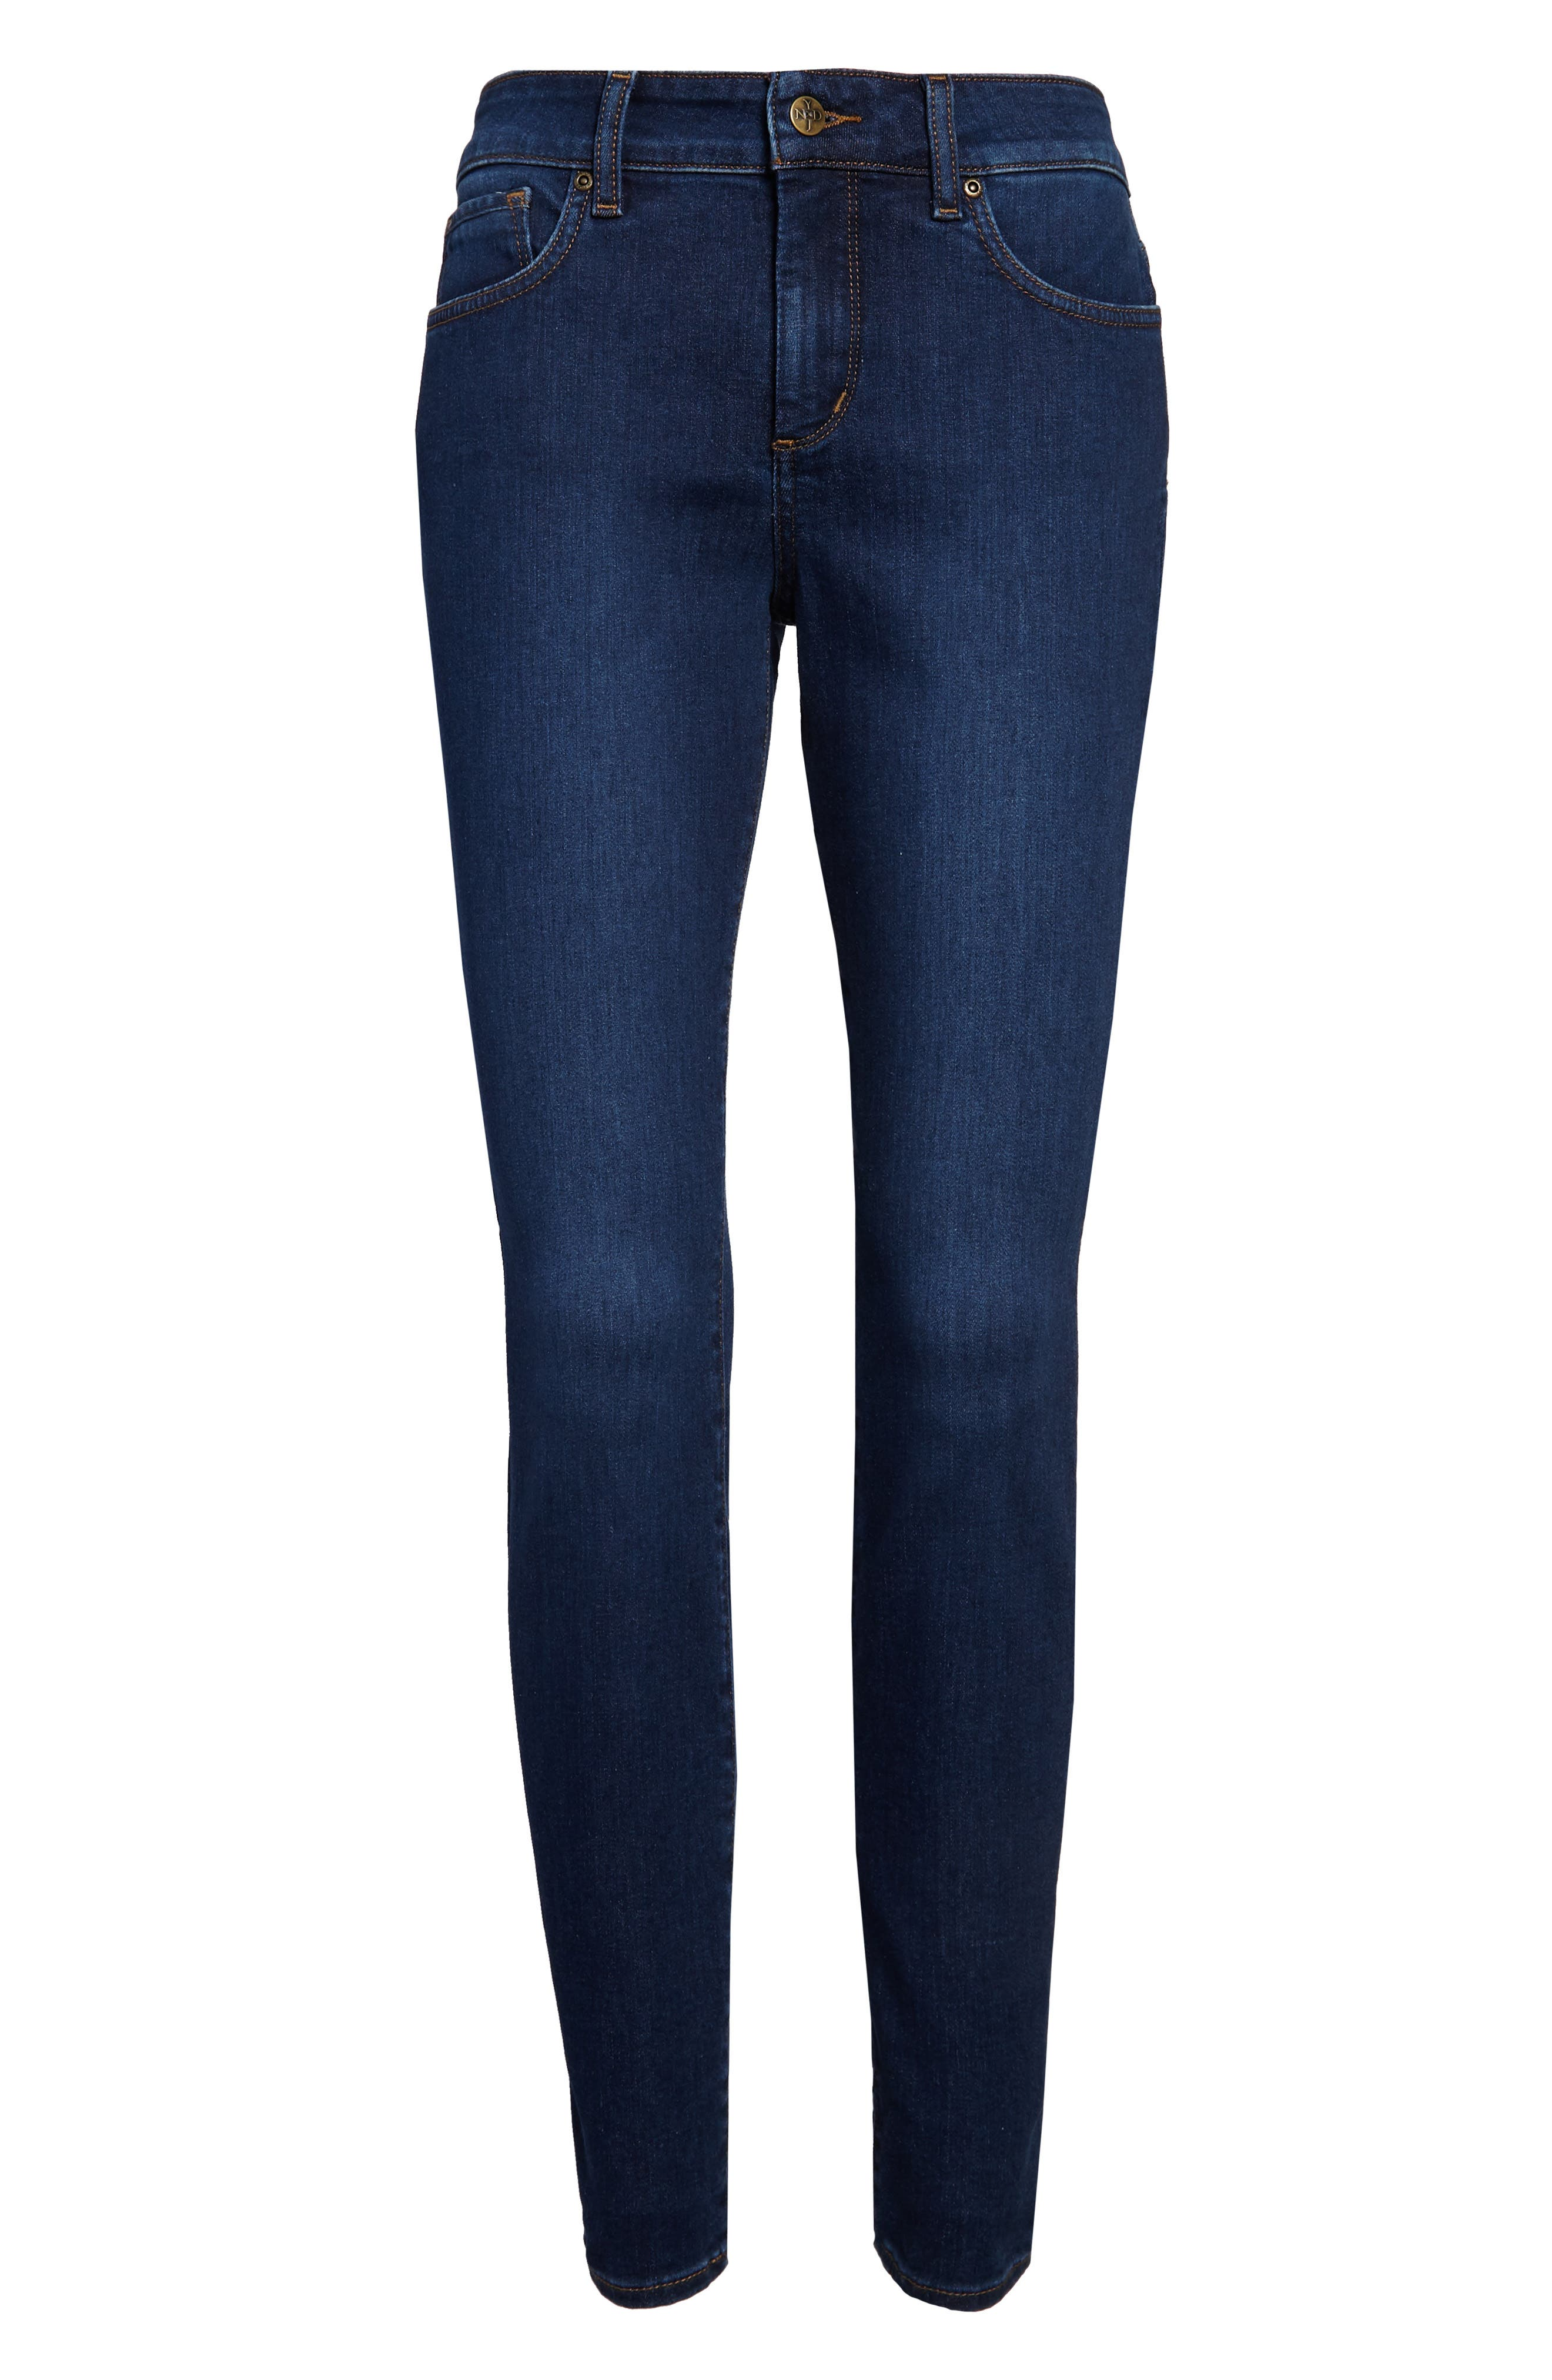 Ami High Waist Stretch Skinny Jeans,                             Alternate thumbnail 4, color,                             COOPER